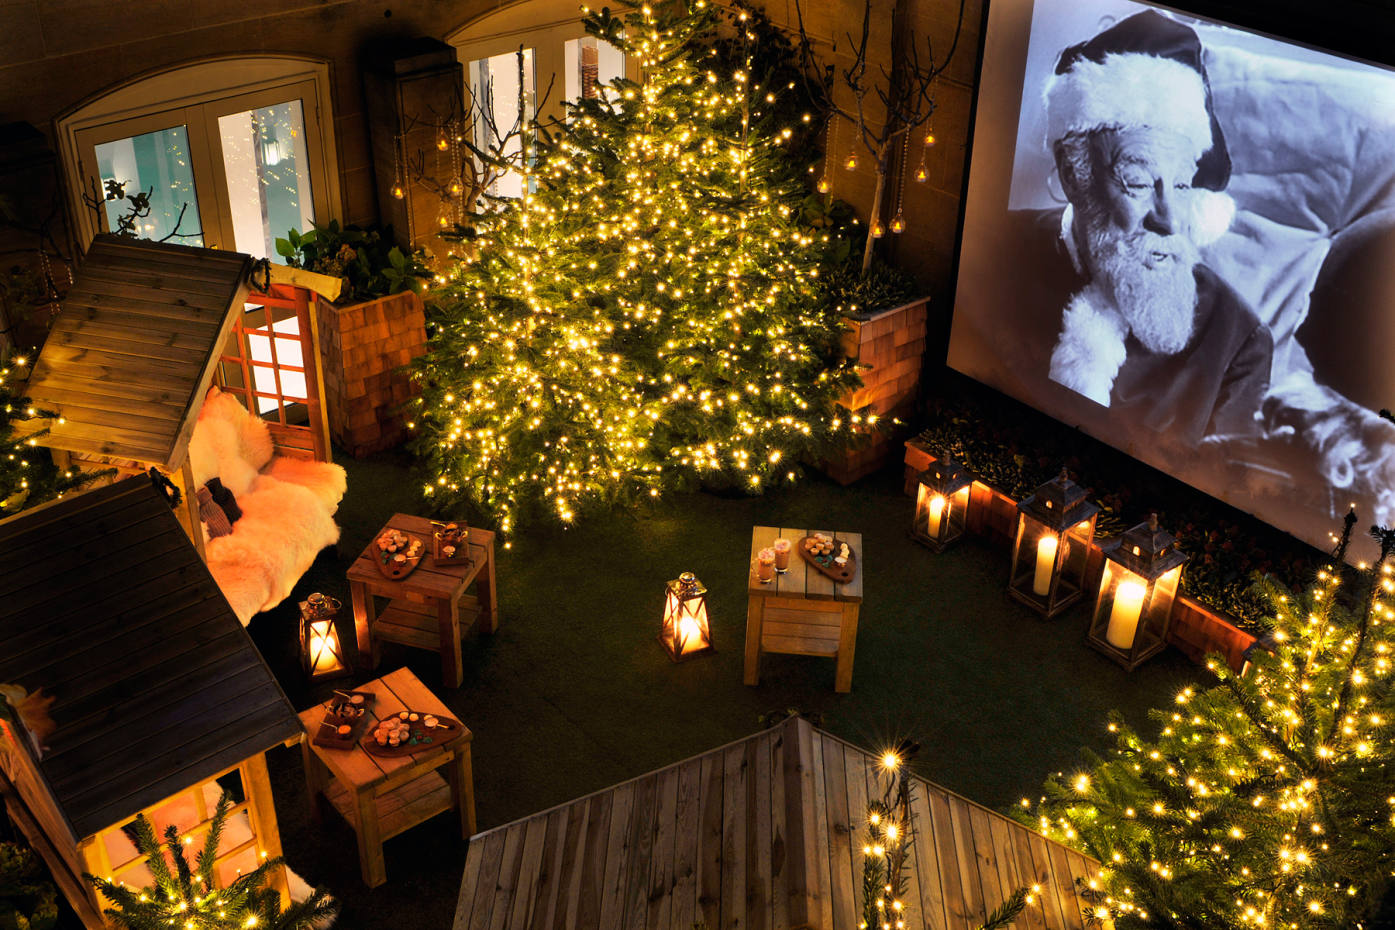 The rooftop winter cinema at The Berkeley will be screening festive films